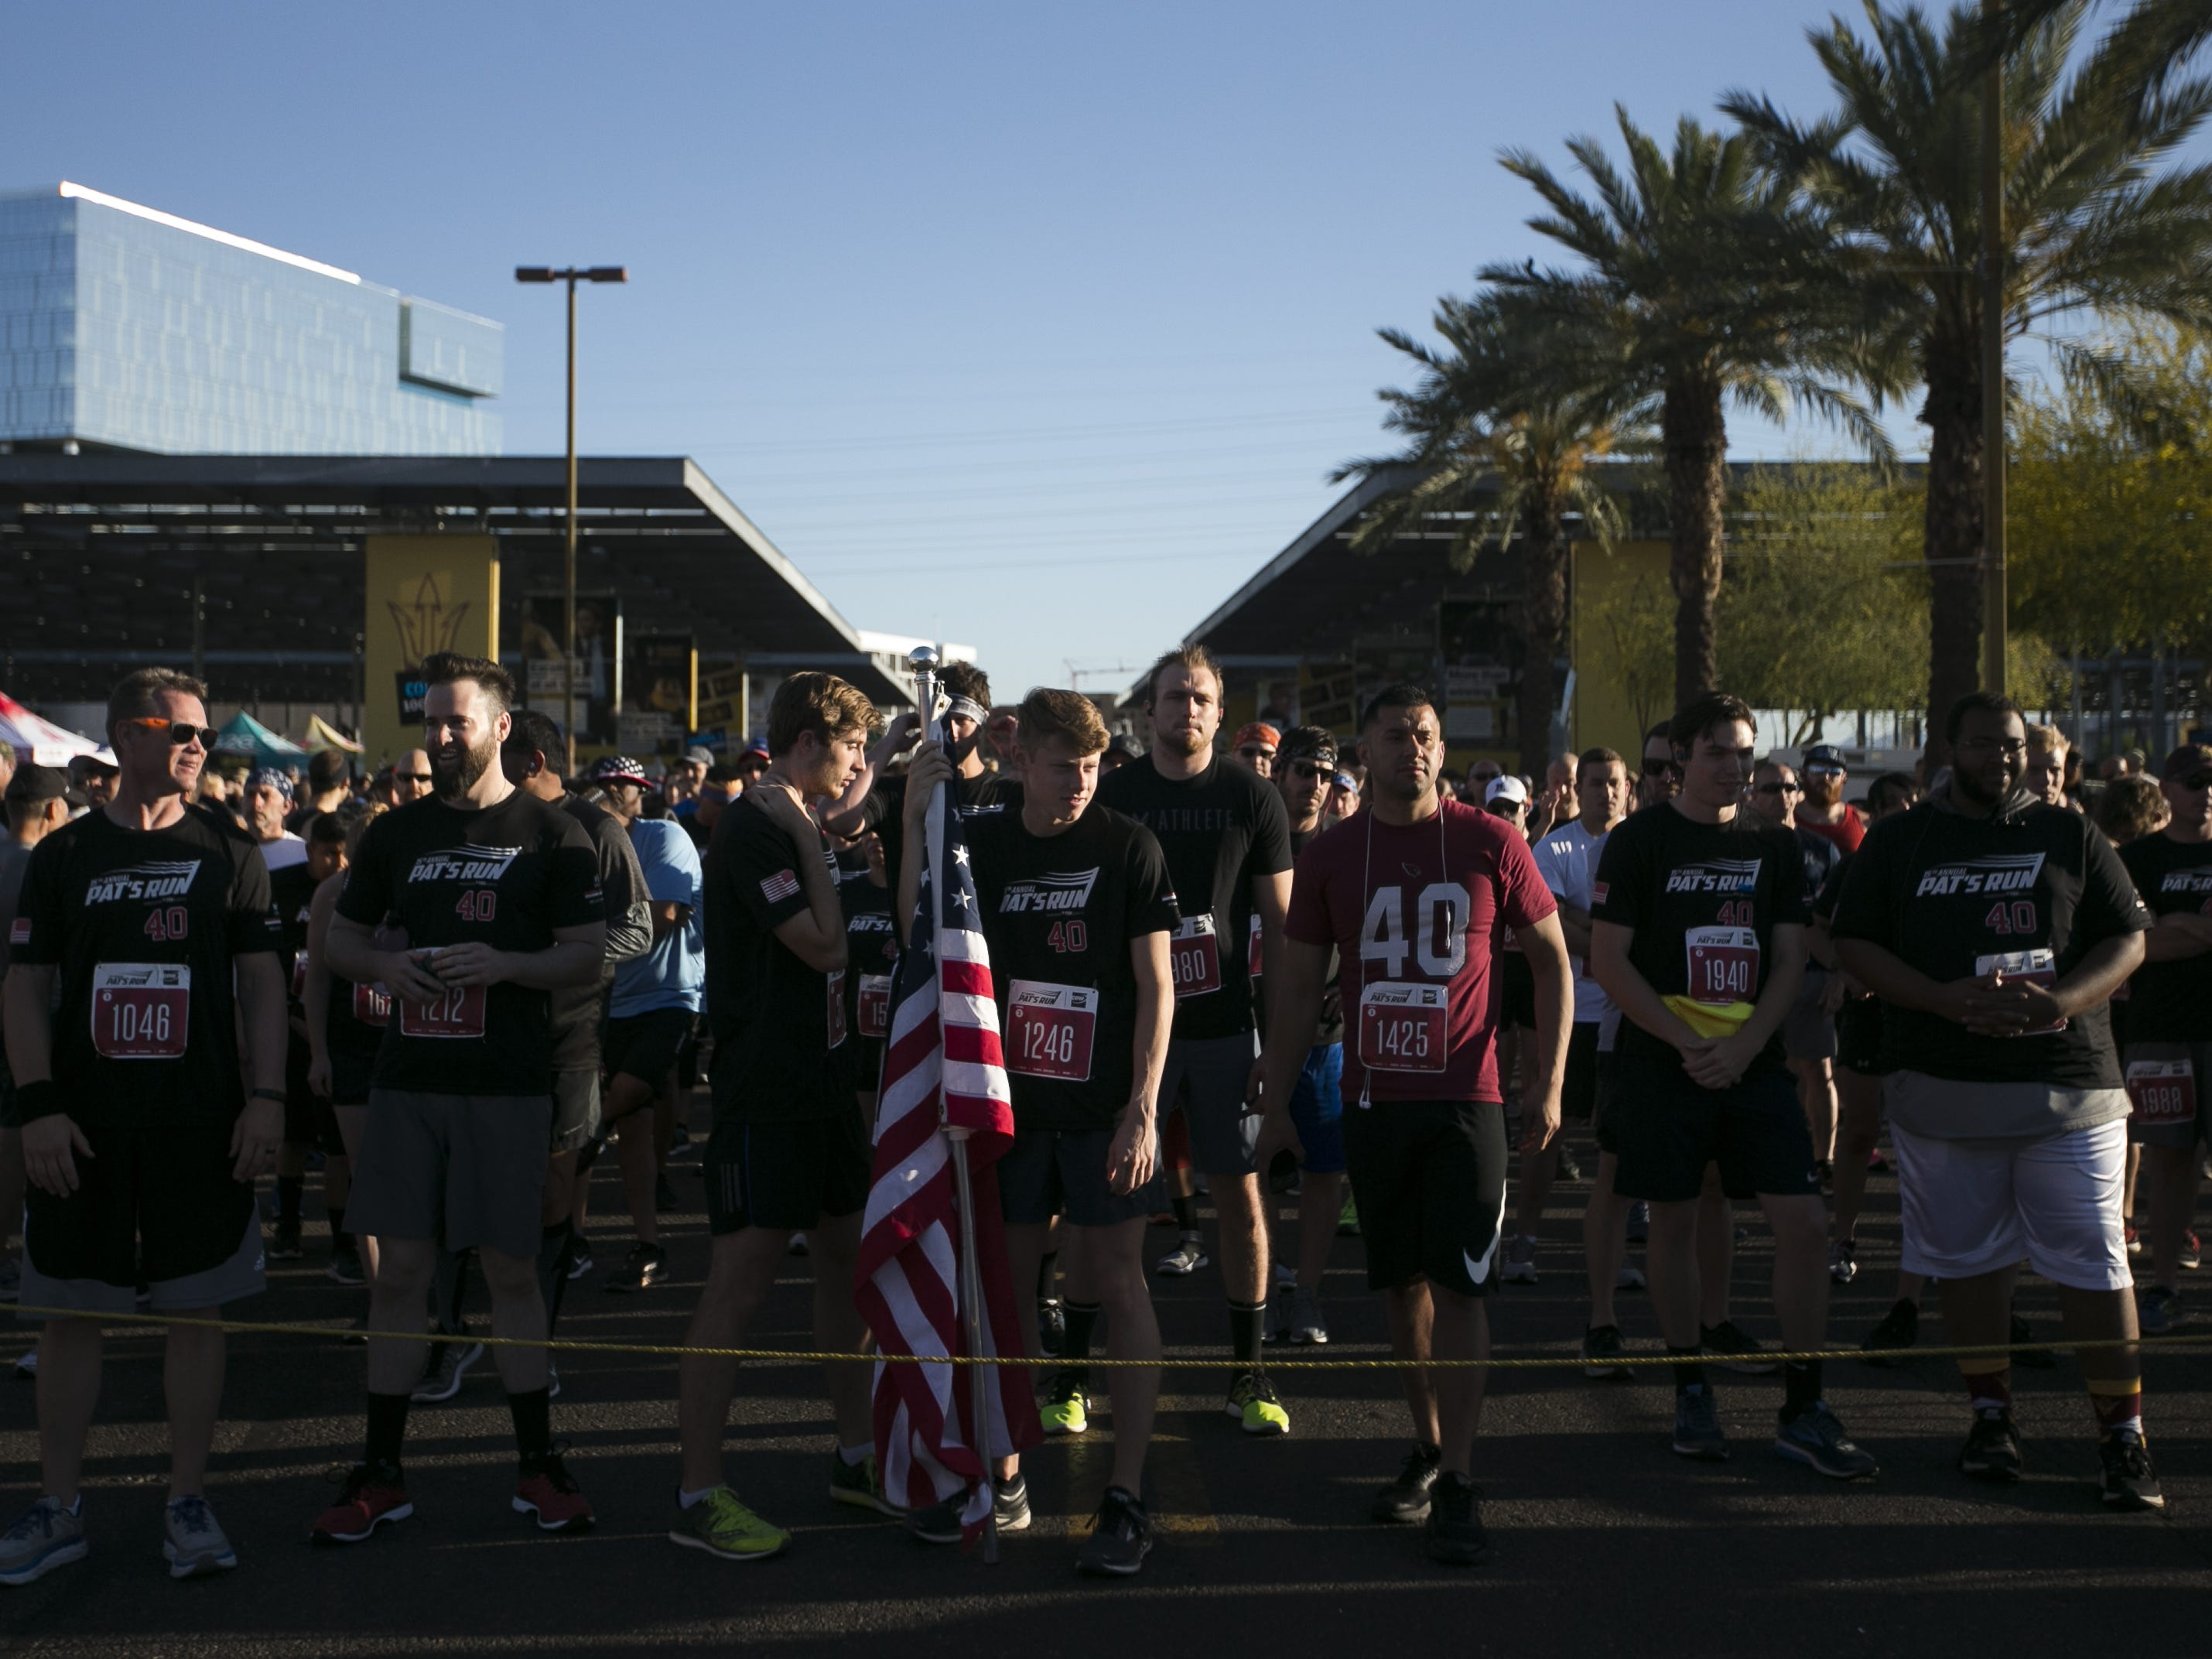 Runners wait for Pat's Run 2019 to start in Tempe on April 27, 2019.